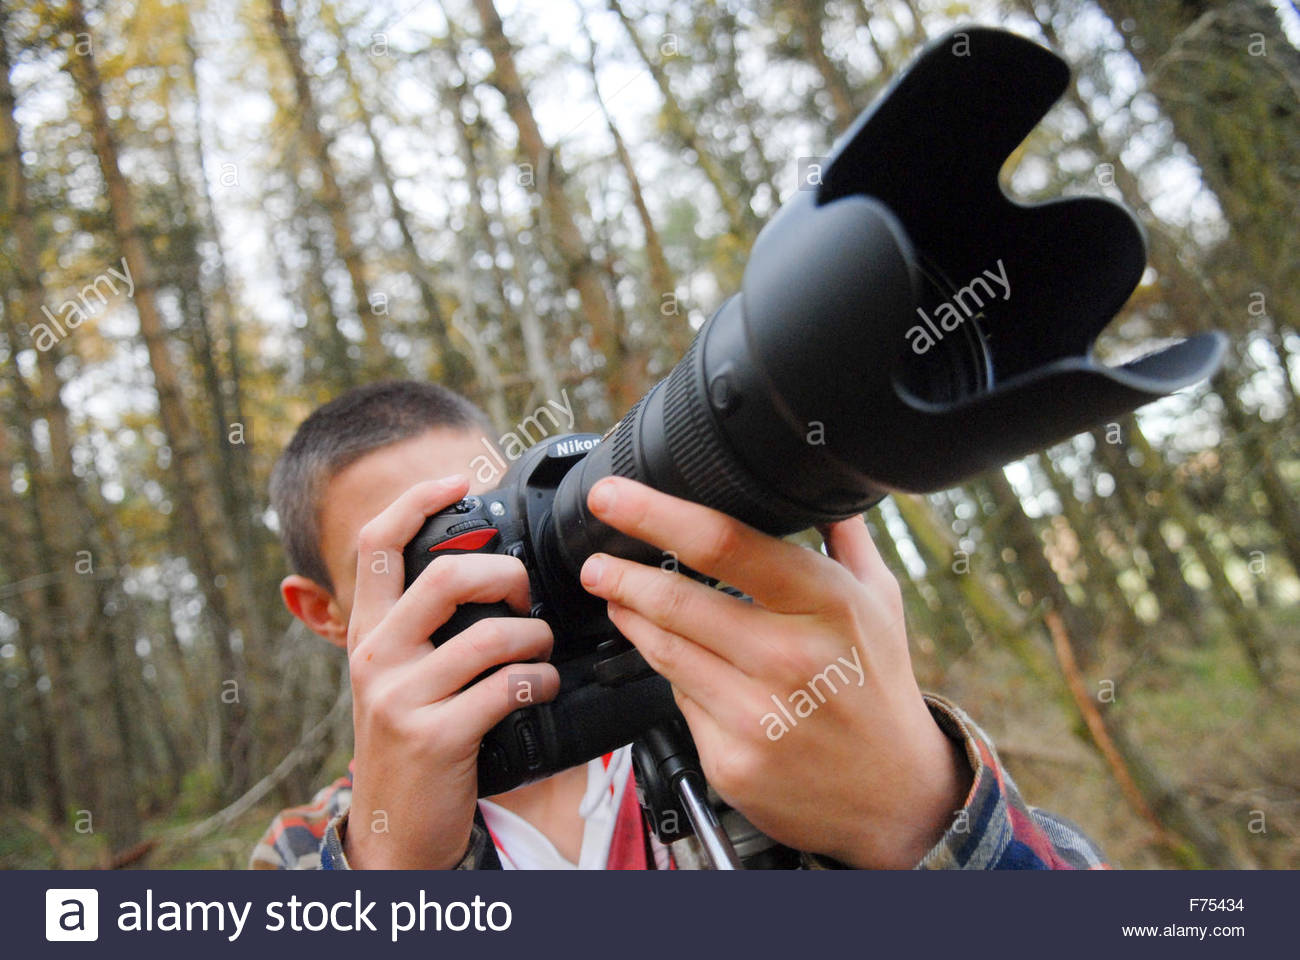 teenage-boy-with-dslr-camera-in-forest-F